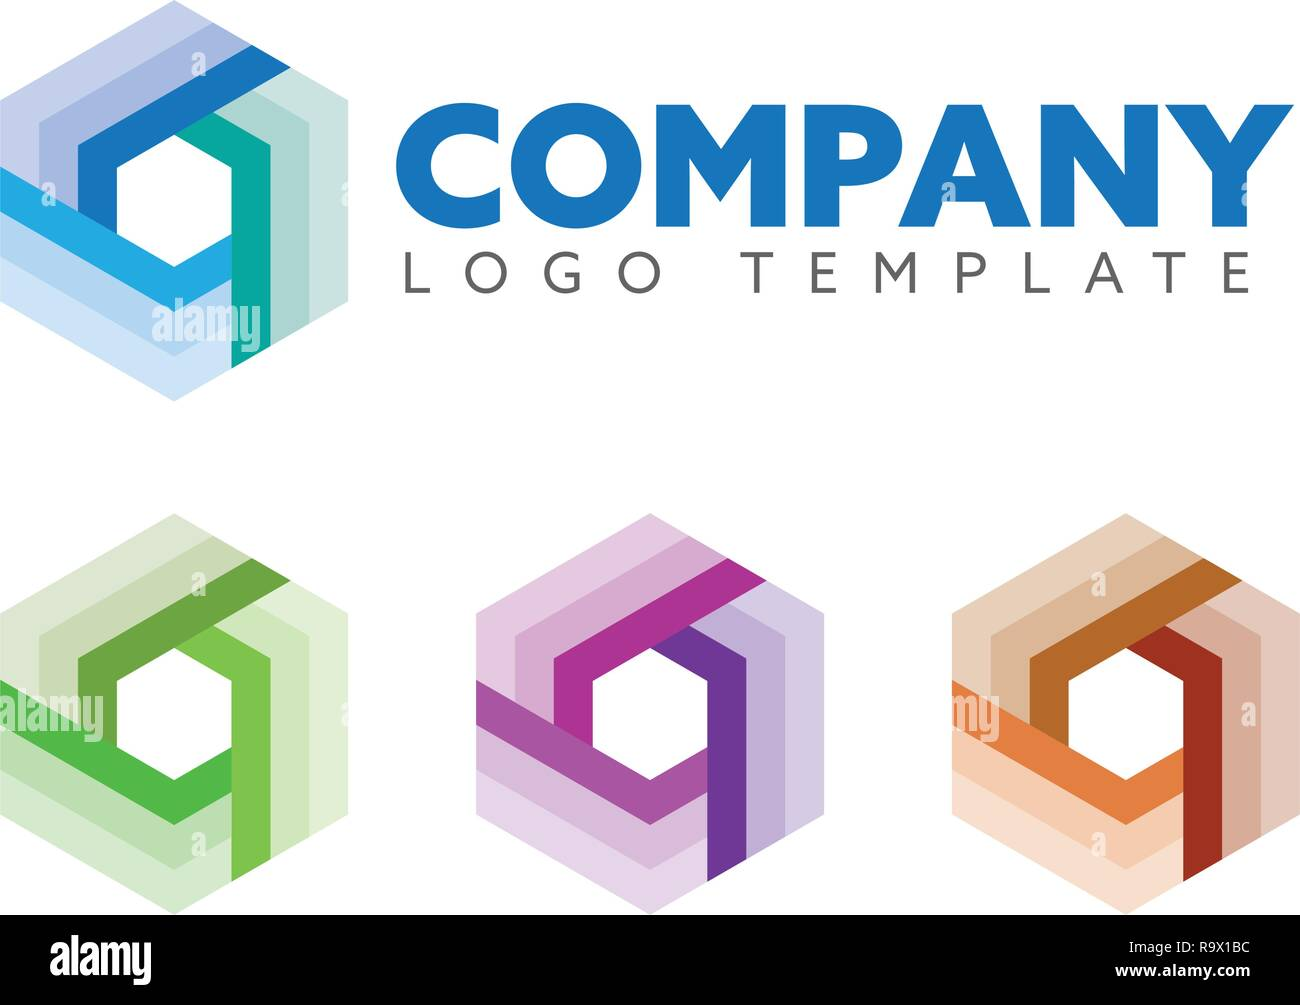 Hexagon shape company logo vector template, abstract cube symbol for science, technology or logistics - Stock Image